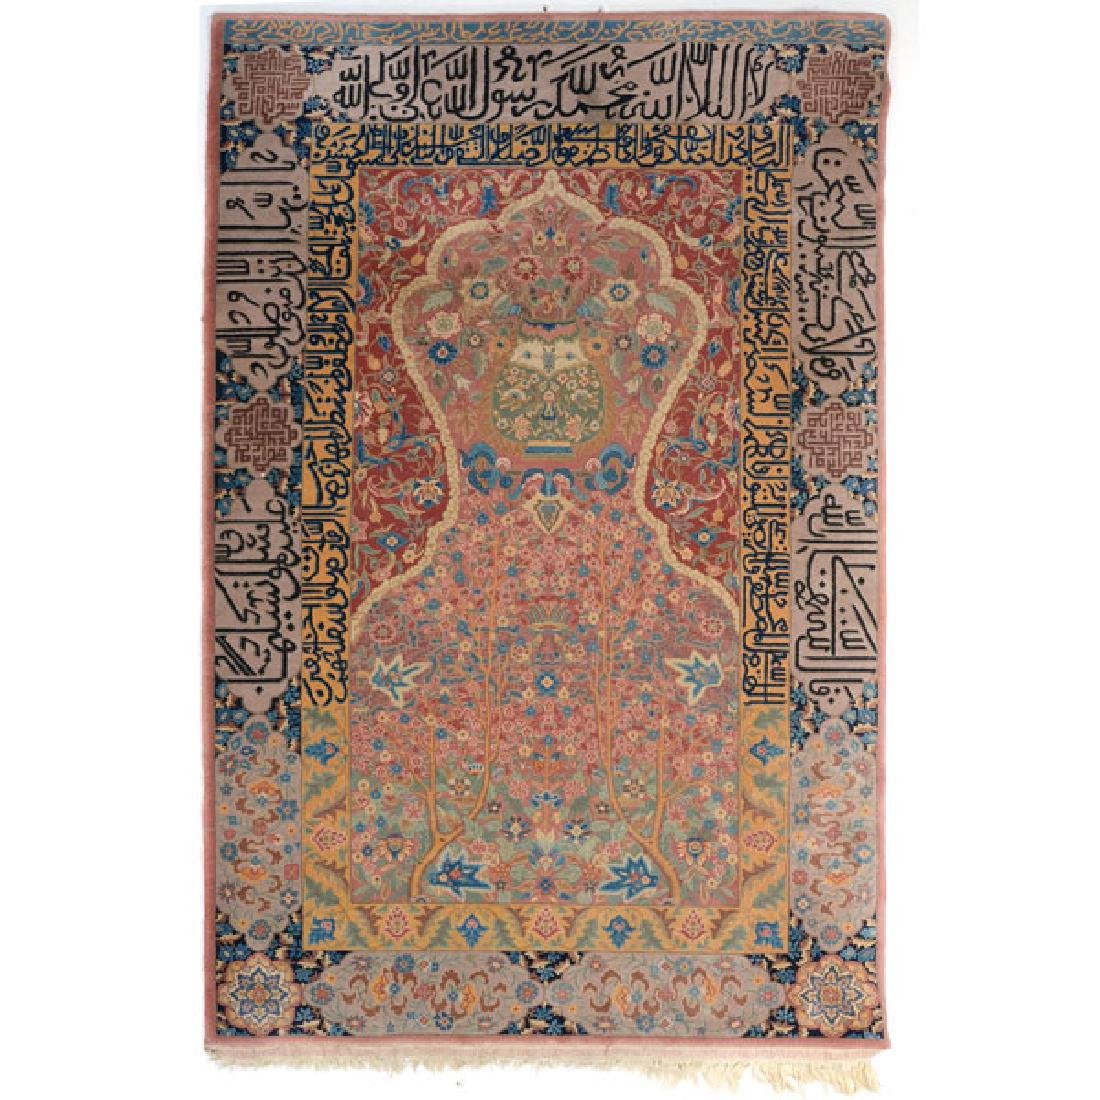 Islamic Figural Carpet Tapestry with Calligraphy: 5